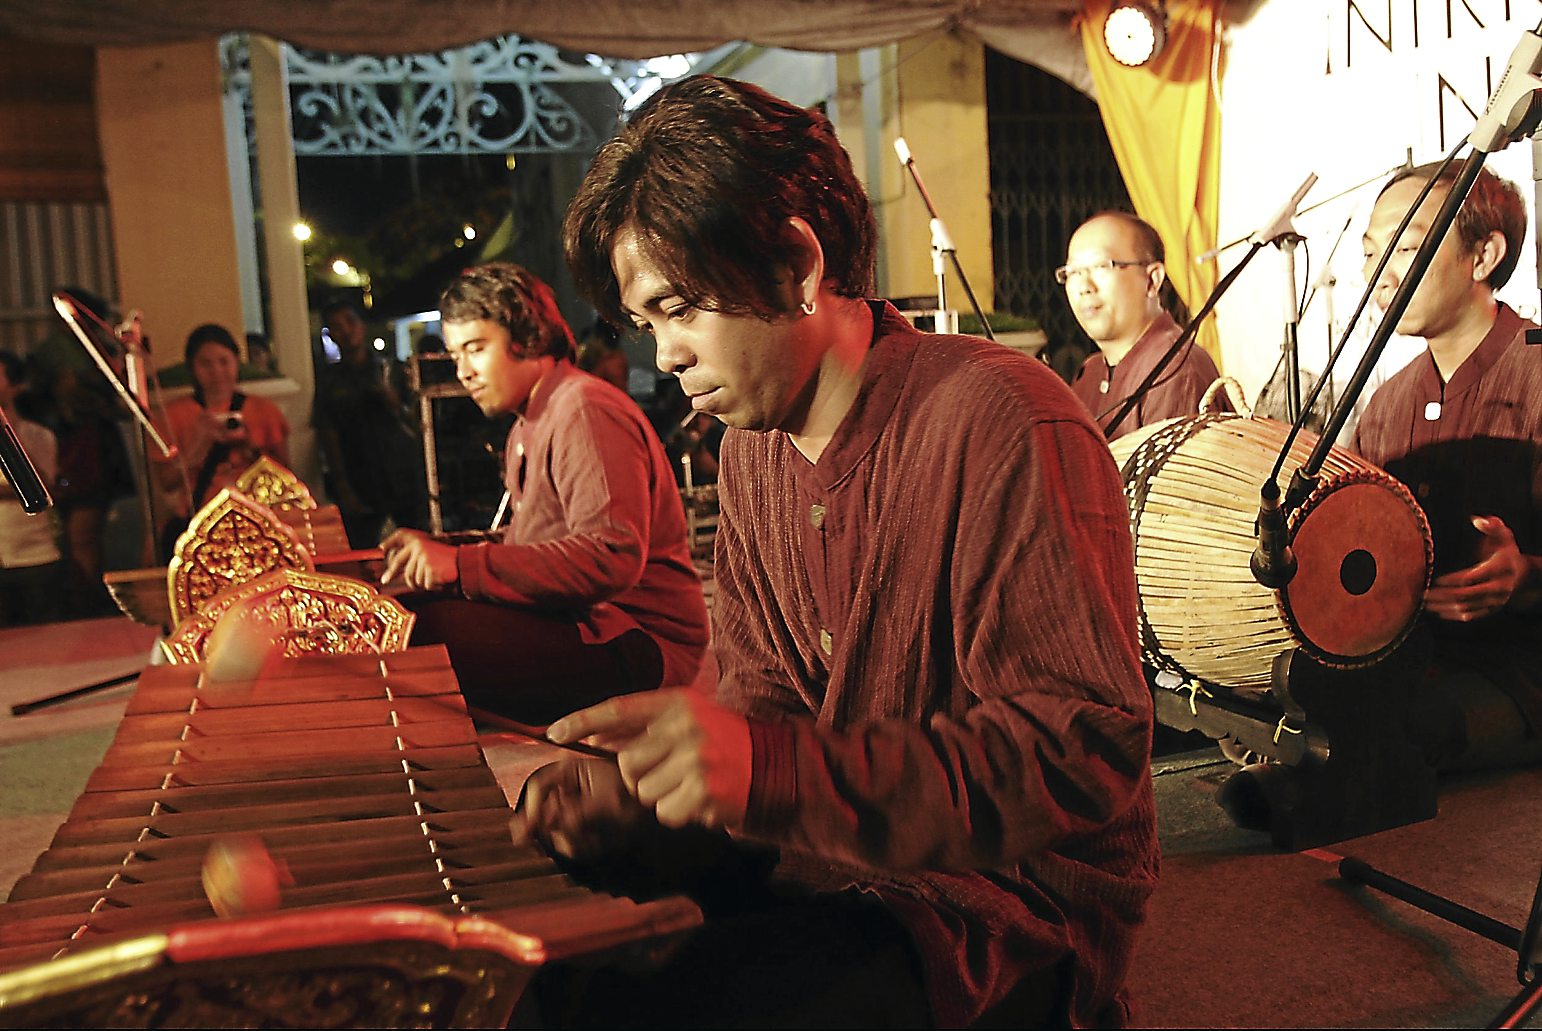 Xxxxxxxx: Thailand's Korphai Group performing at the Intriguing Instruments showcase.